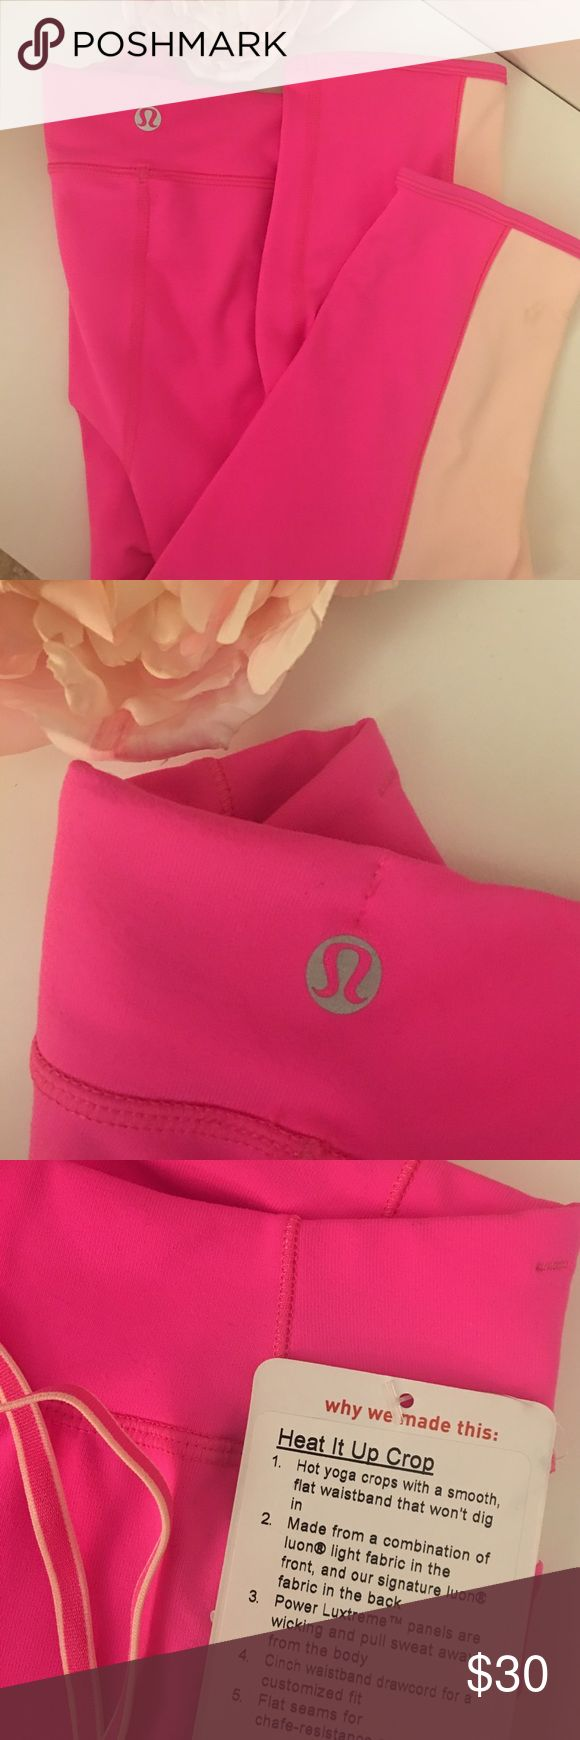 Lululemon pink yoga pants Brand new with tag Lululemon pink knee length yoga pants lululemon athletica Pants Leggings